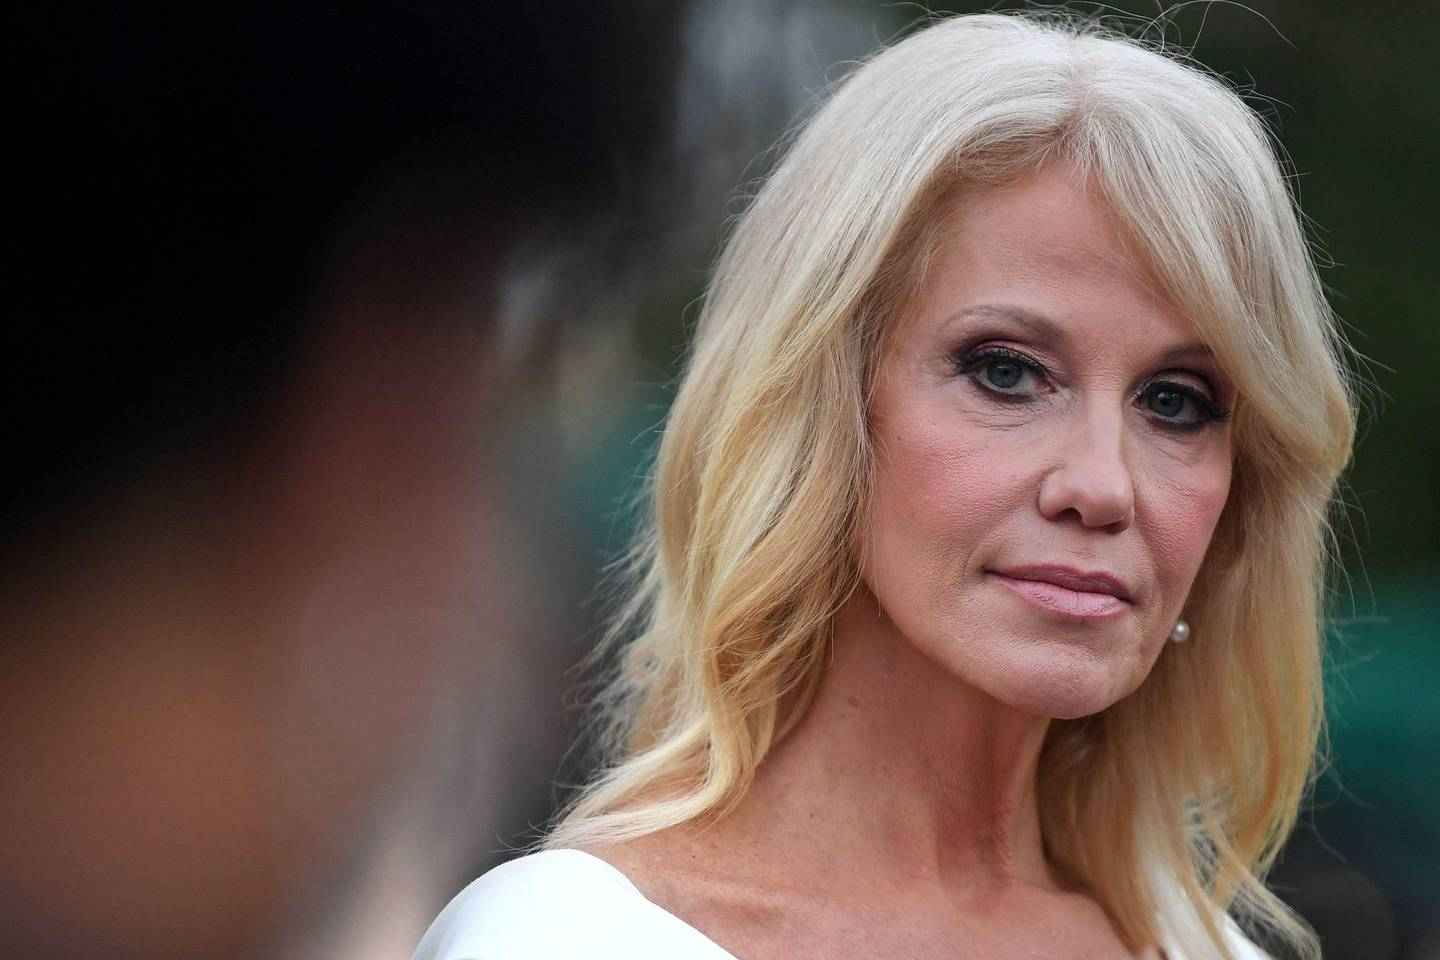 """(FILES) In this file photo taken on August 26, 2020 Counselor to the President Kellyanne Conway speaks with the press at the White House in Washington, DC. - Former Counselor to the US President Kellyanne Conway said on October 2, 2020 that she has tested positive for Covid-19. President Donald Trump was hospitalized on October 2 and given an experimental Covid-19 treatment, but said he was """"well,"""" following bombshell news that the Republican had contracted the virus, knocking him off the campaign trail a month from the US election. (Photo by Eric BARADAT / AFP)"""